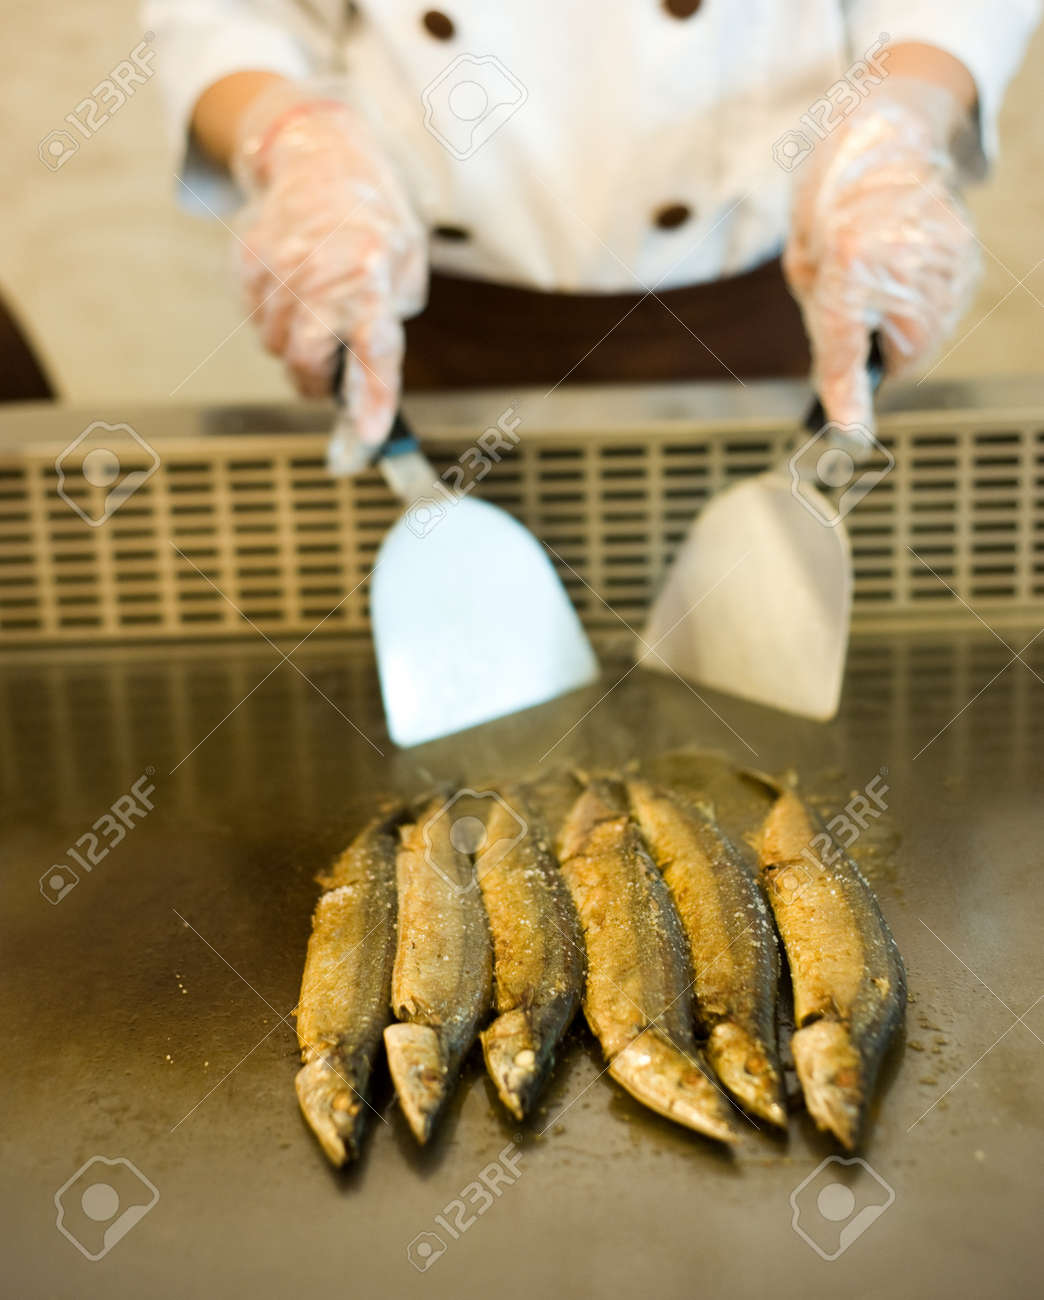 Japanese chef cooking traditional saury teppanyaki on a hot plate. Stock Photo - 14053233